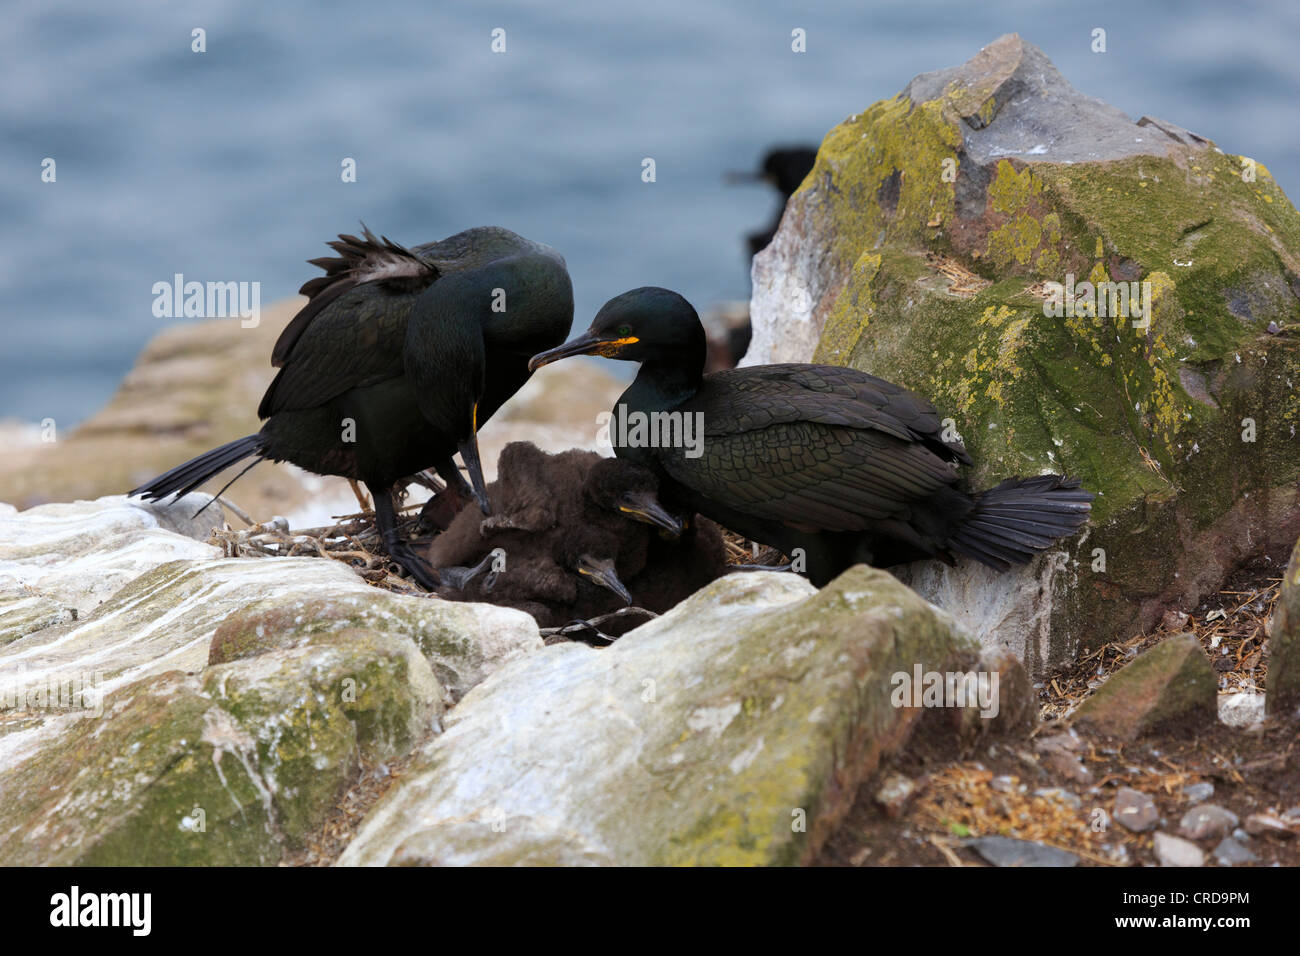 Shag, Phalacrocorax aristotelis, pair tending chicks. Both parents incubate the eggs and tend the chicks after hatching. - Stock Image